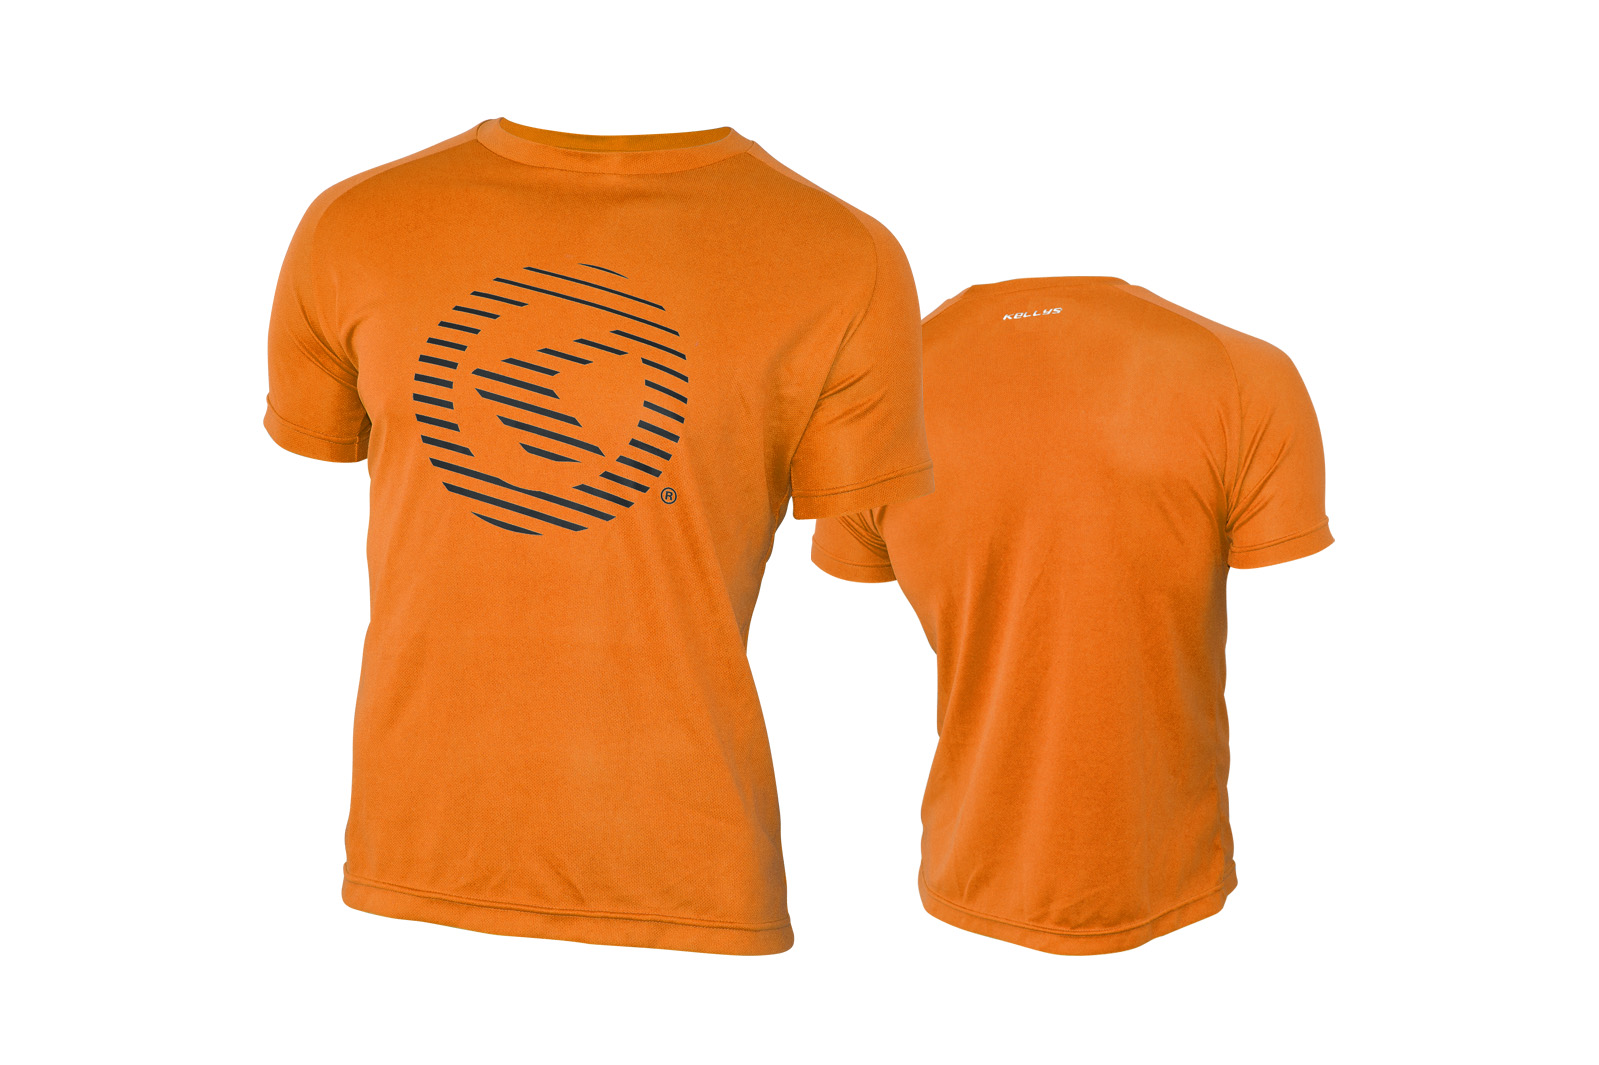 T-Shirt KELLYS ACTIVE orange - L - Mega Handelsgesellschaft